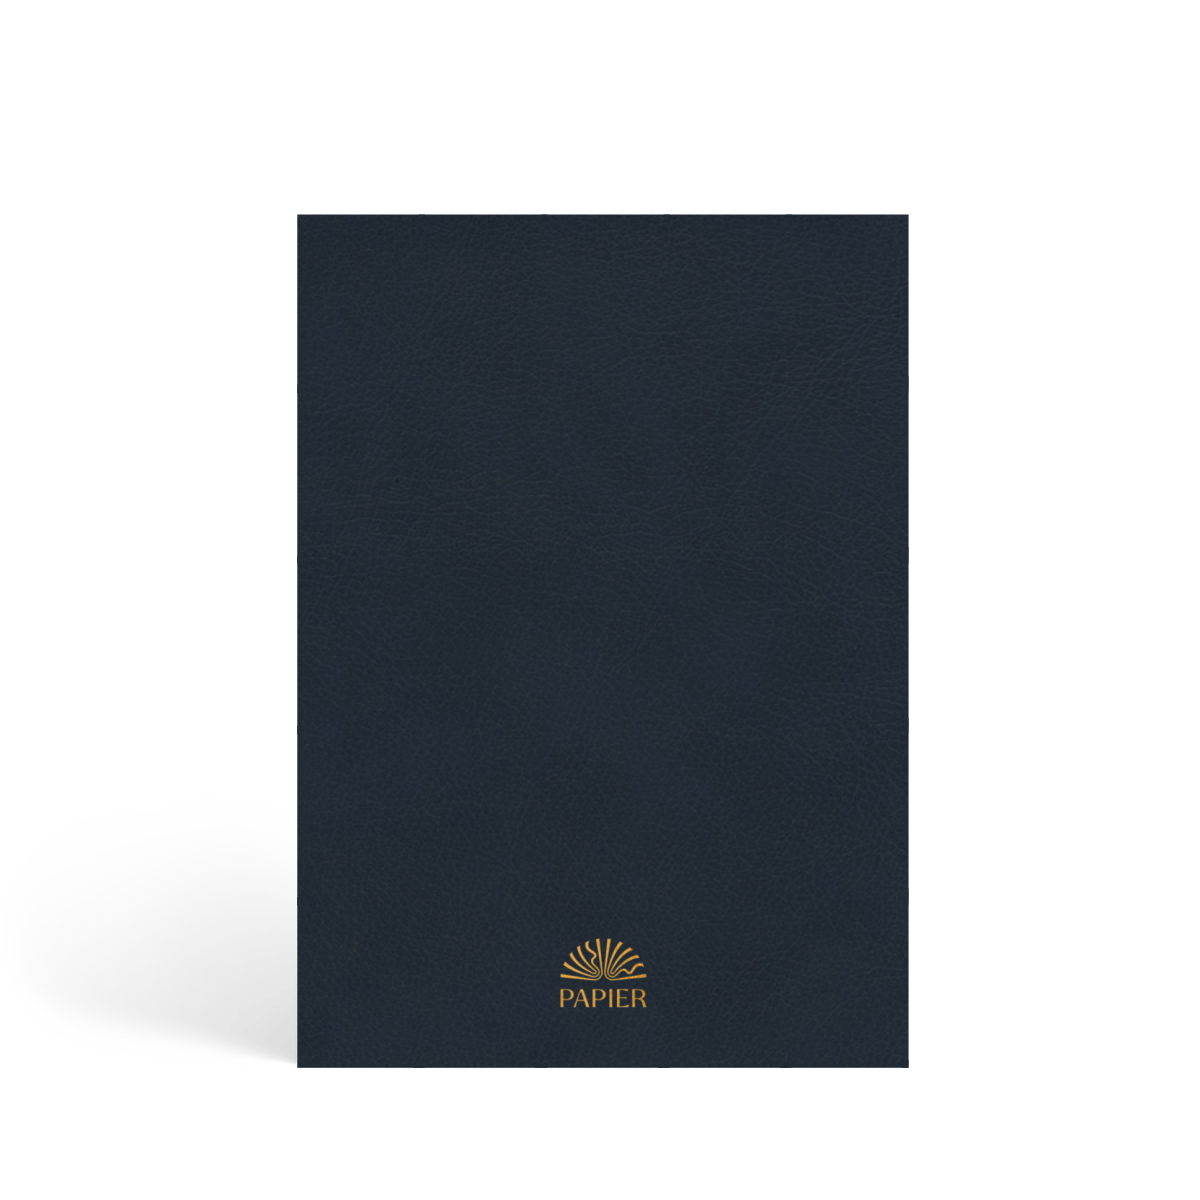 Https%3a%2f%2fwww.papier.com%2fproduct image%2f95383%2f5%2fnavy monogram 23882 back 1573232874.png?ixlib=rb 1.1